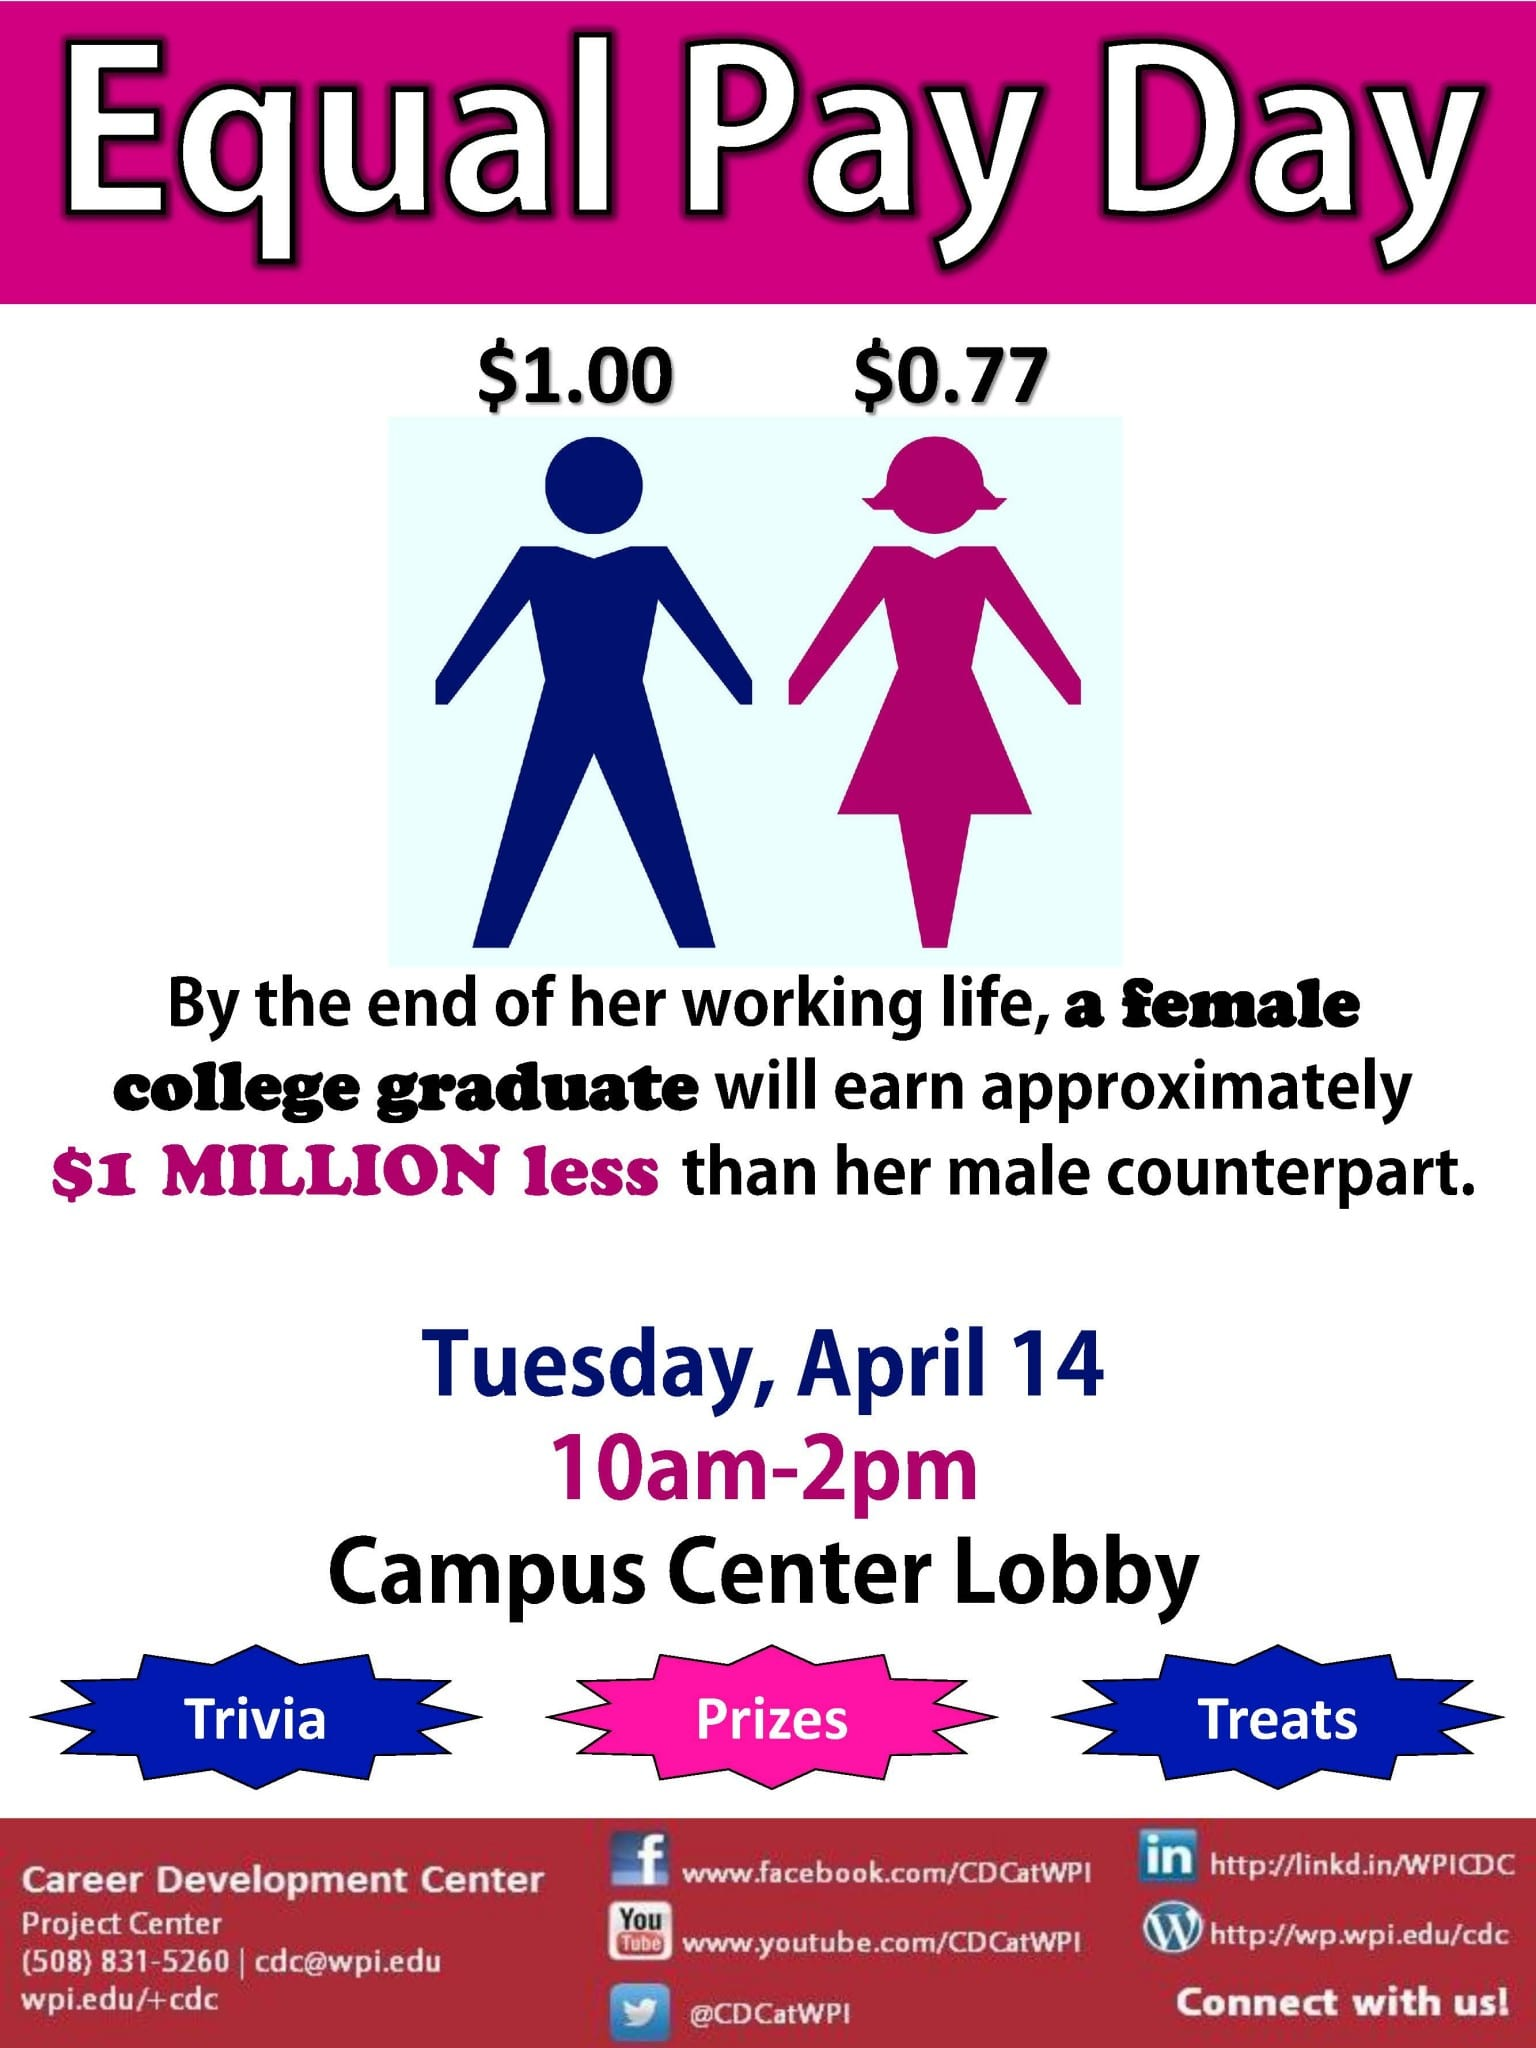 Equal Pay Day Activities 4_14_15 Equal Pay Day